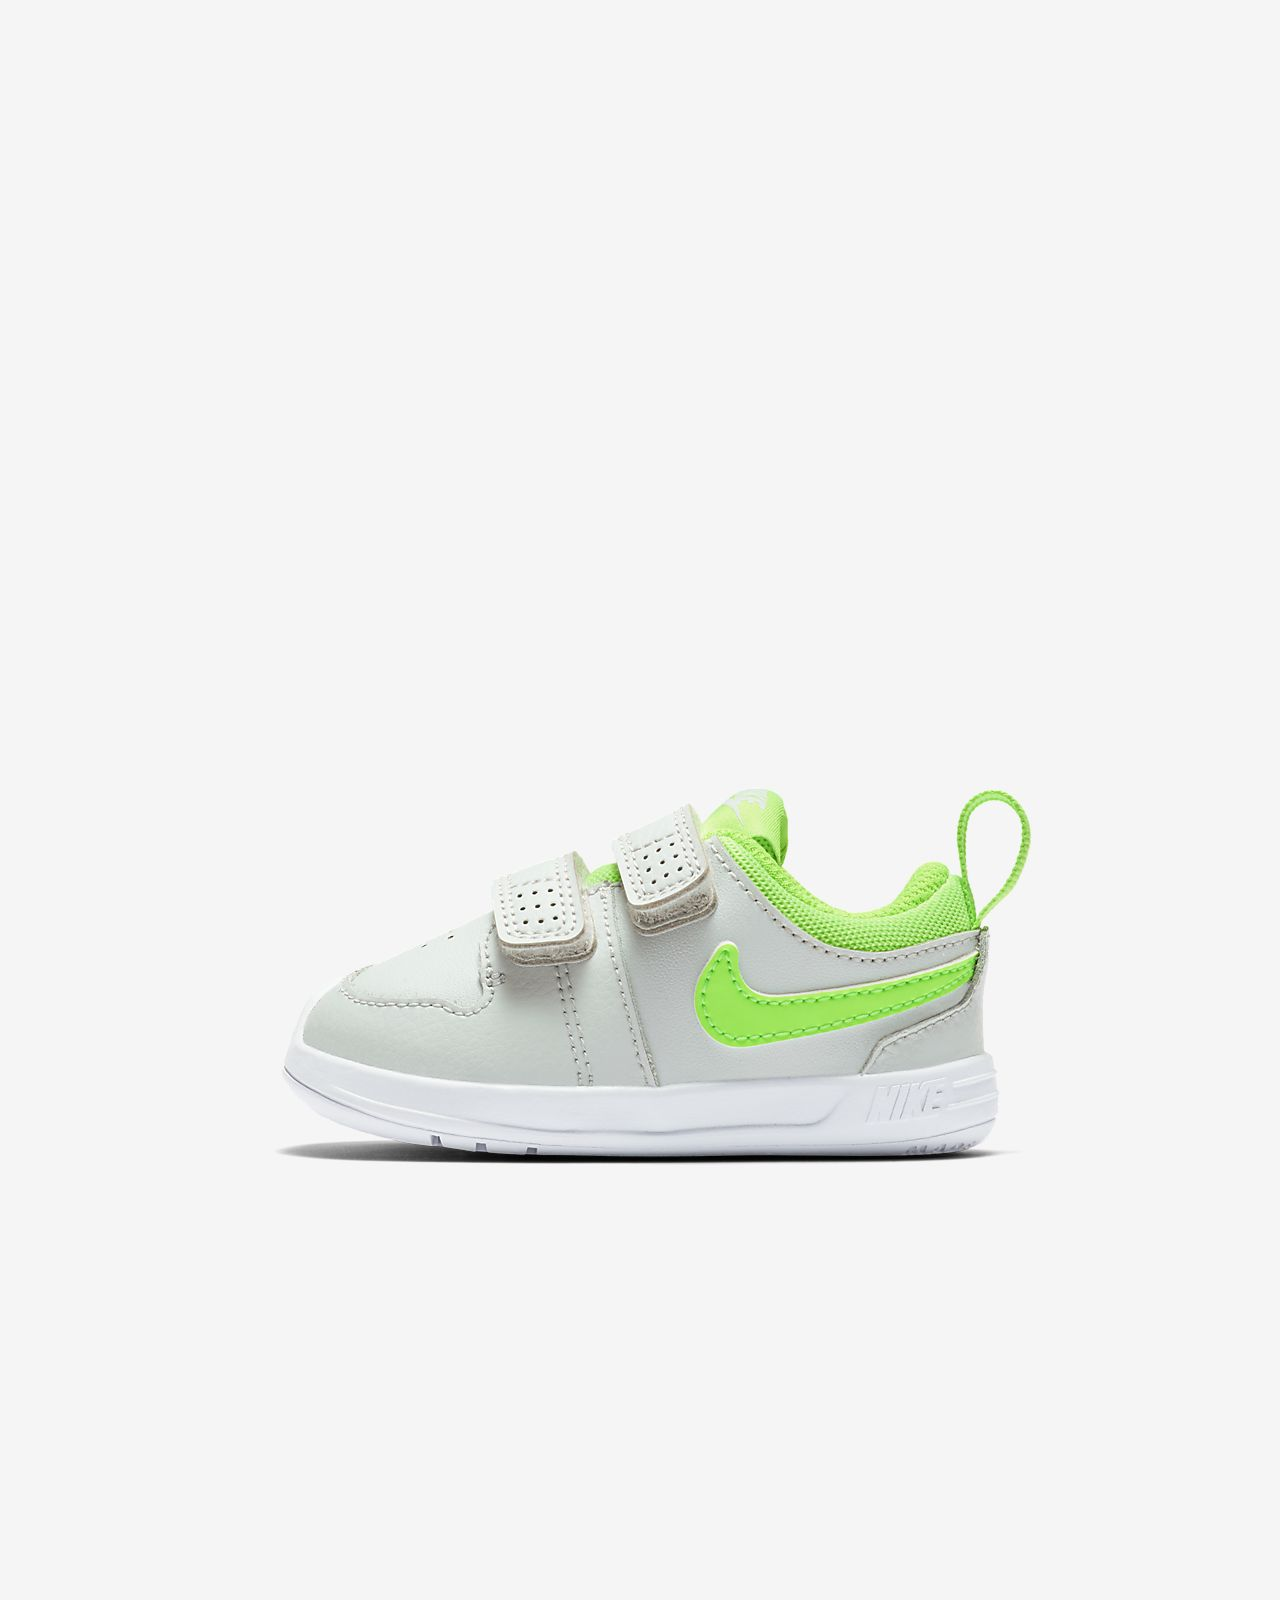 Nike Pico 5 Baby & Toddler Shoe